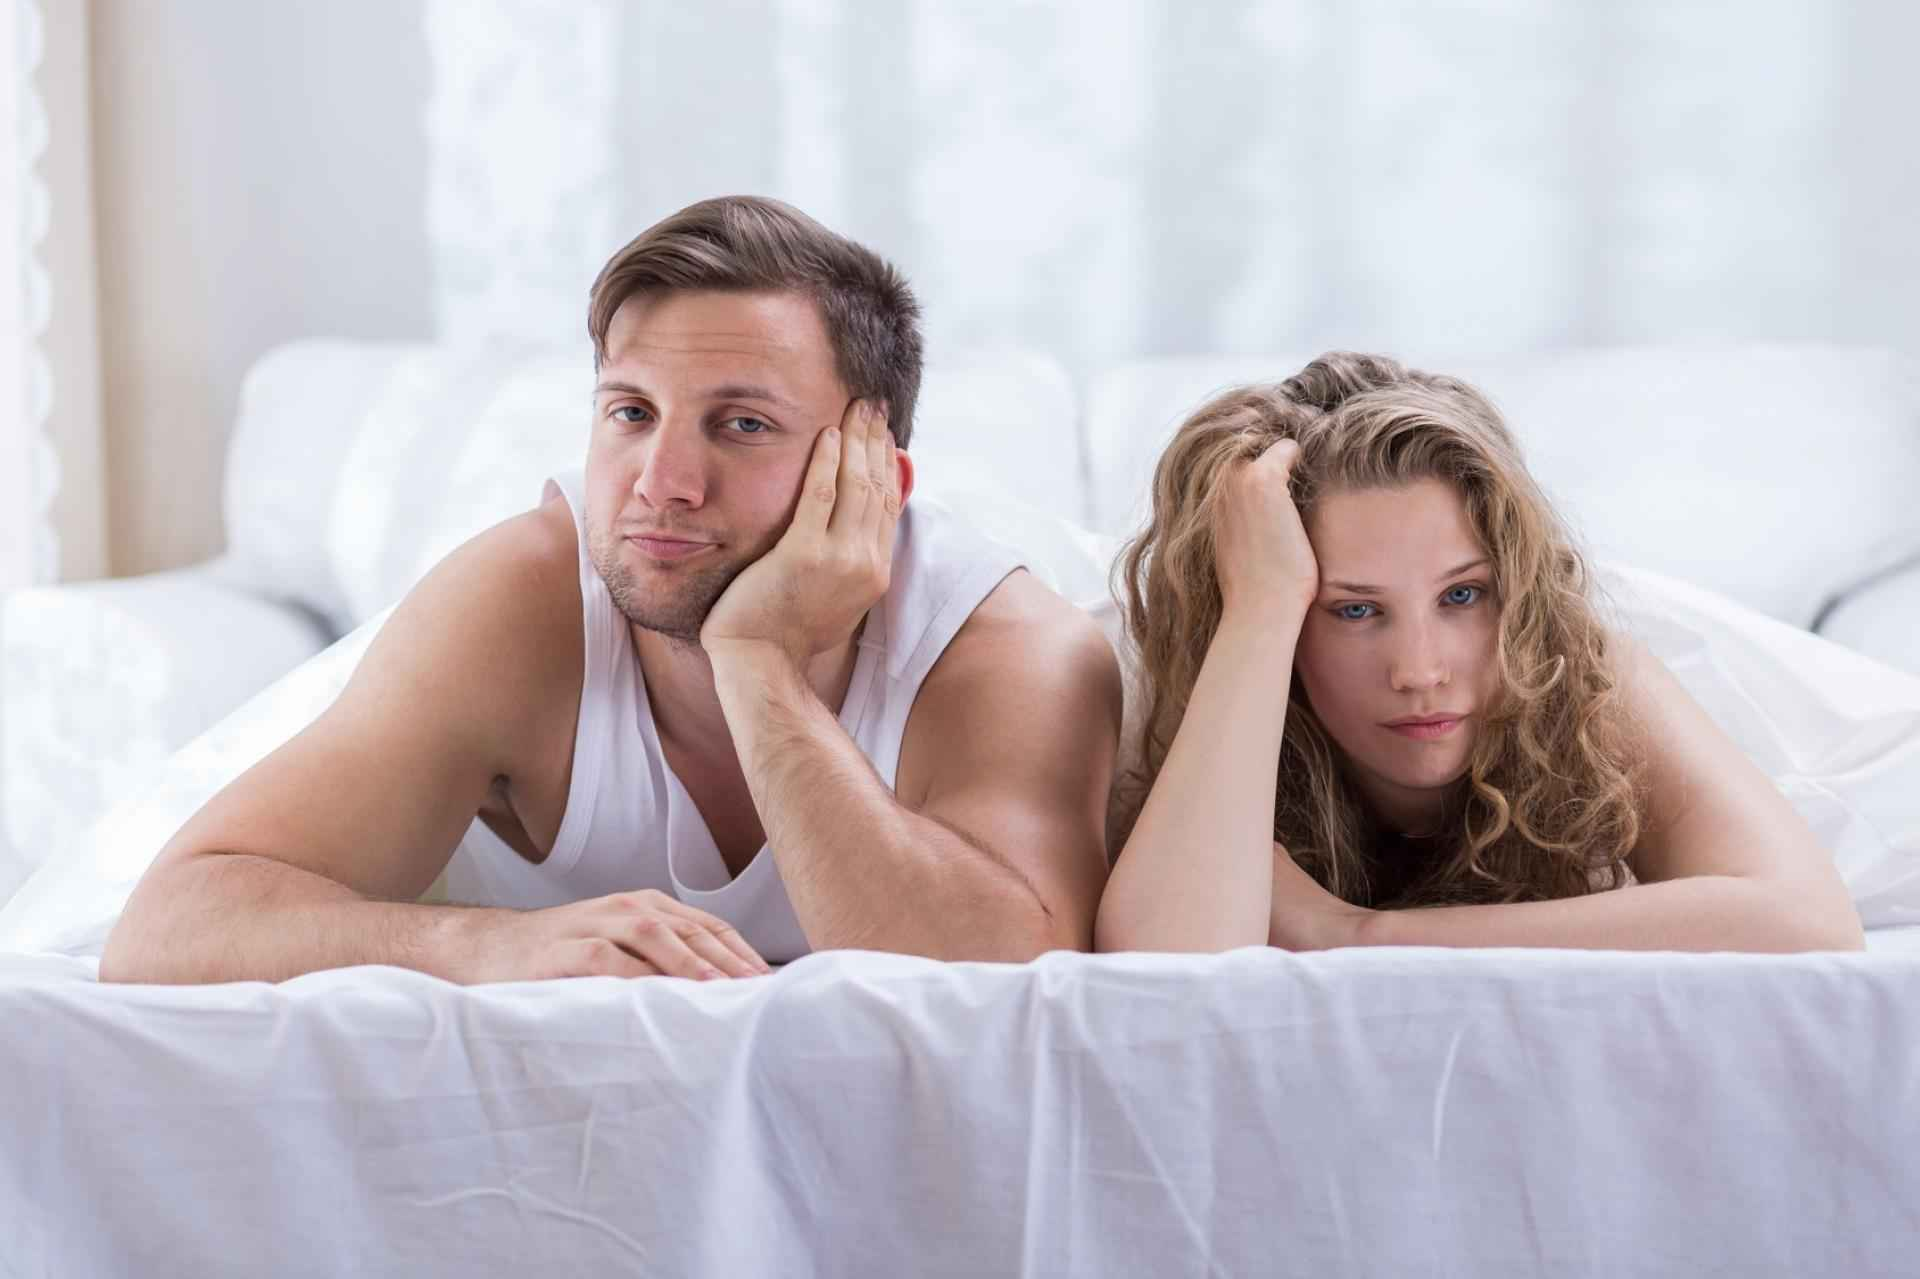 Steps to Take When Doubting Your Relationship